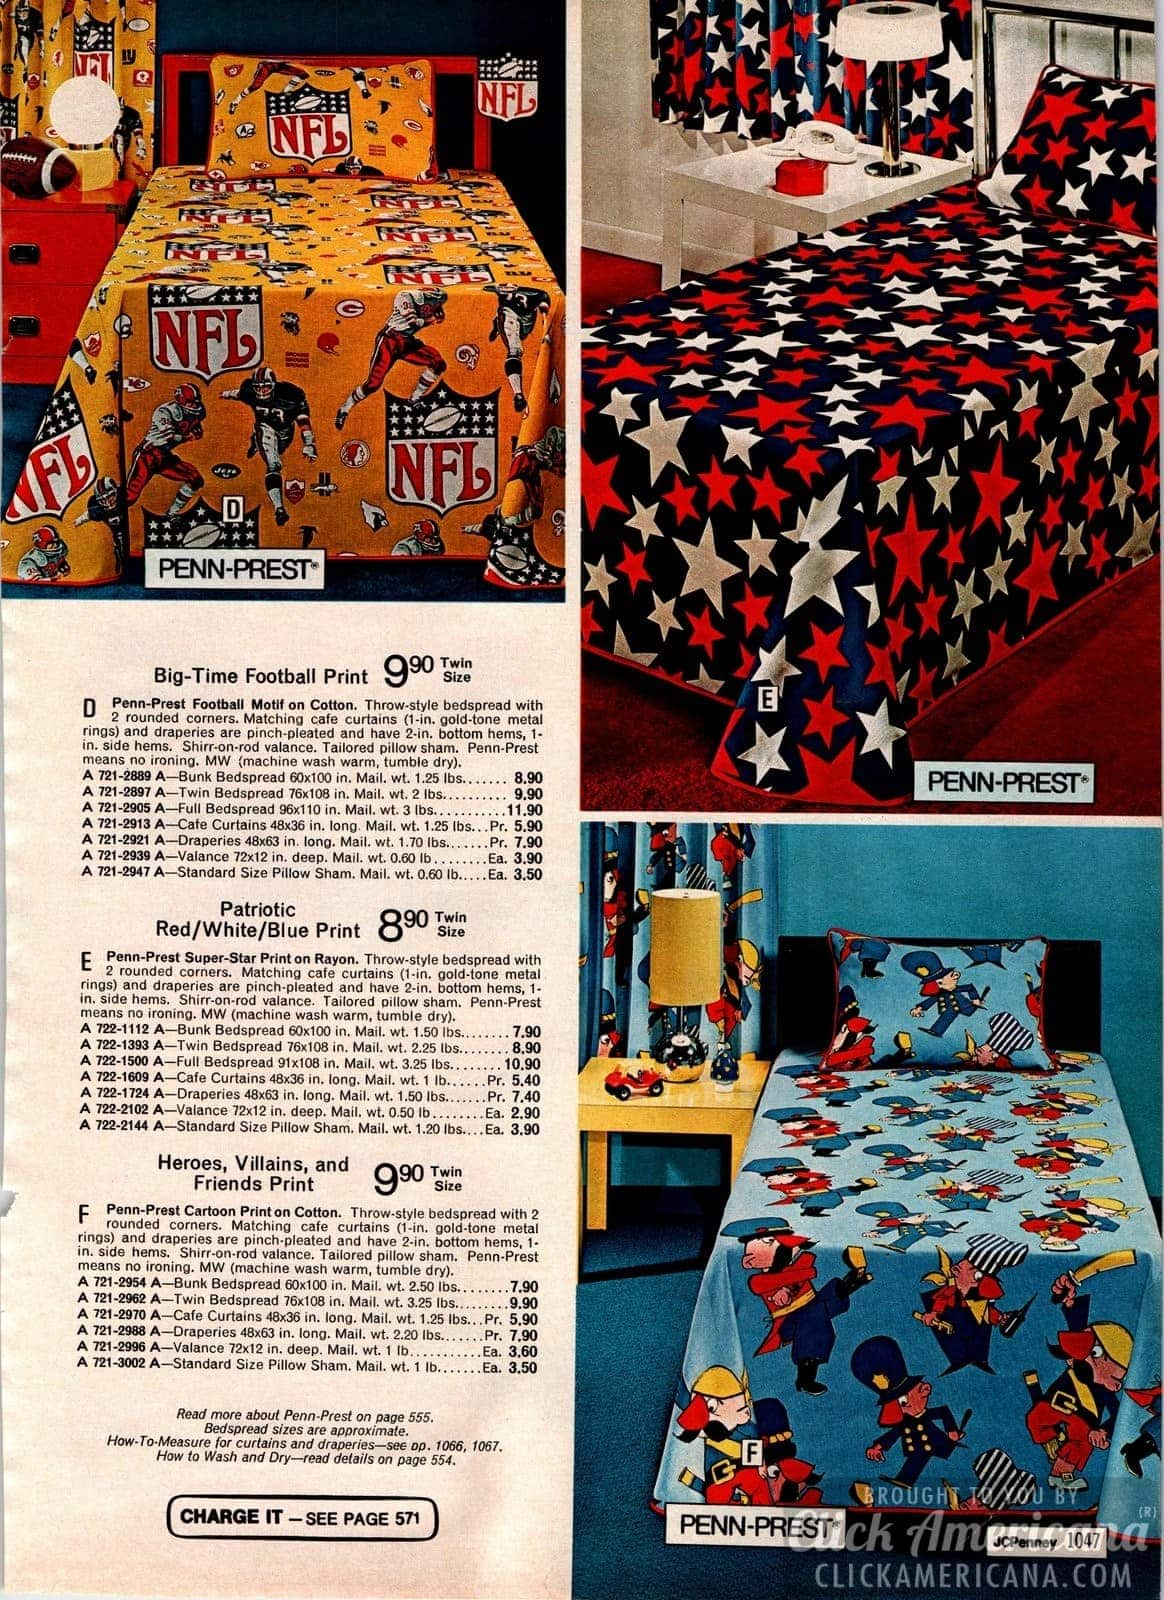 NFL Football print, patriotic red/white/blue & heroes, villians and friends 70s bedspreads for kids